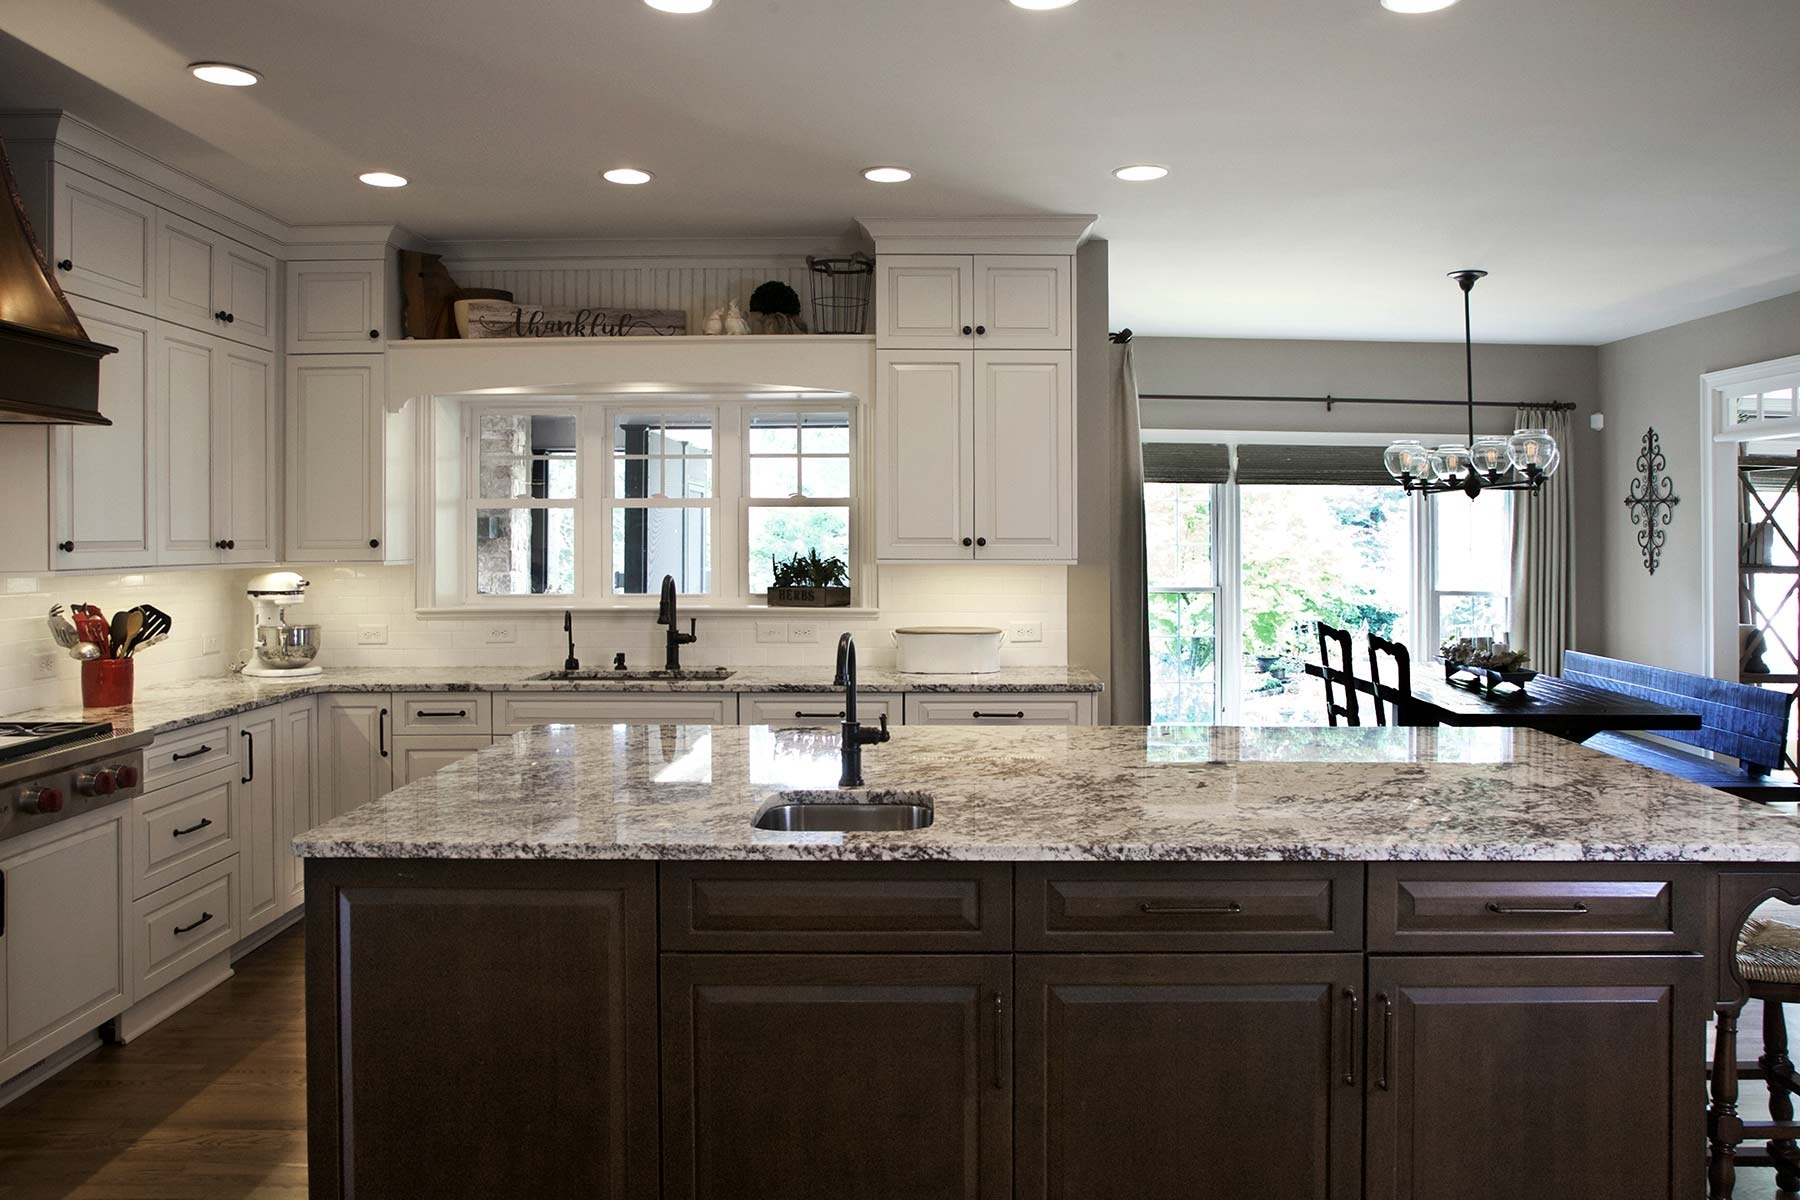 New Kitchen For Roswell Ga Home | Ad&B in Kitchen Remodeling Roswell Ga